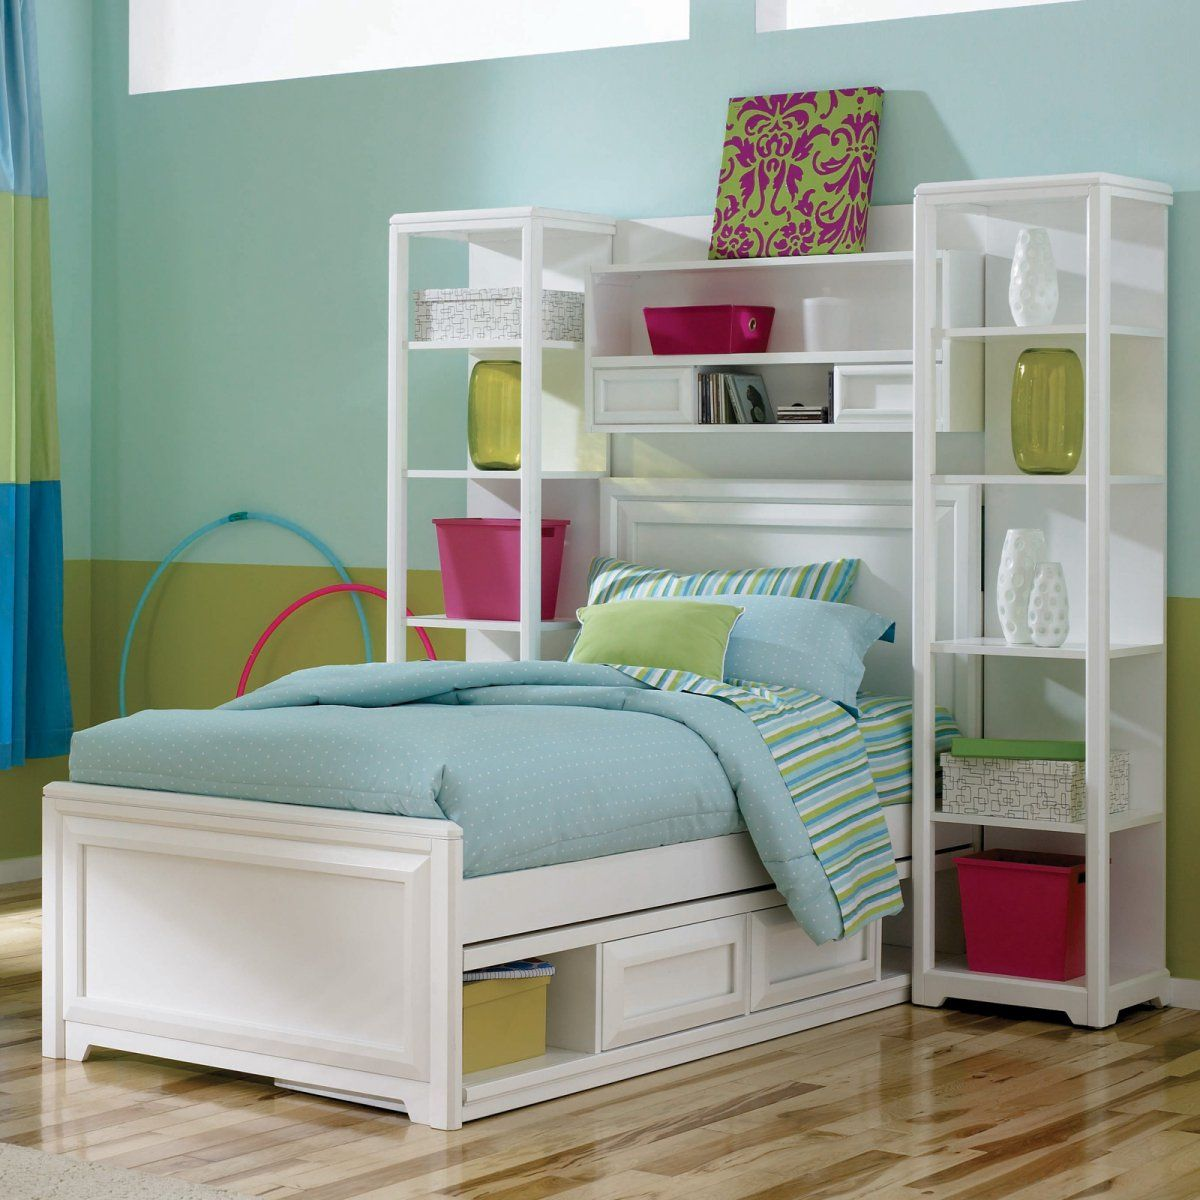 Interesting Idea Using Bookshelves Instead Of Night Stands For Storage In A Small Bedroom Bookcase Bed Kids Beds With Storage Bedroom Design